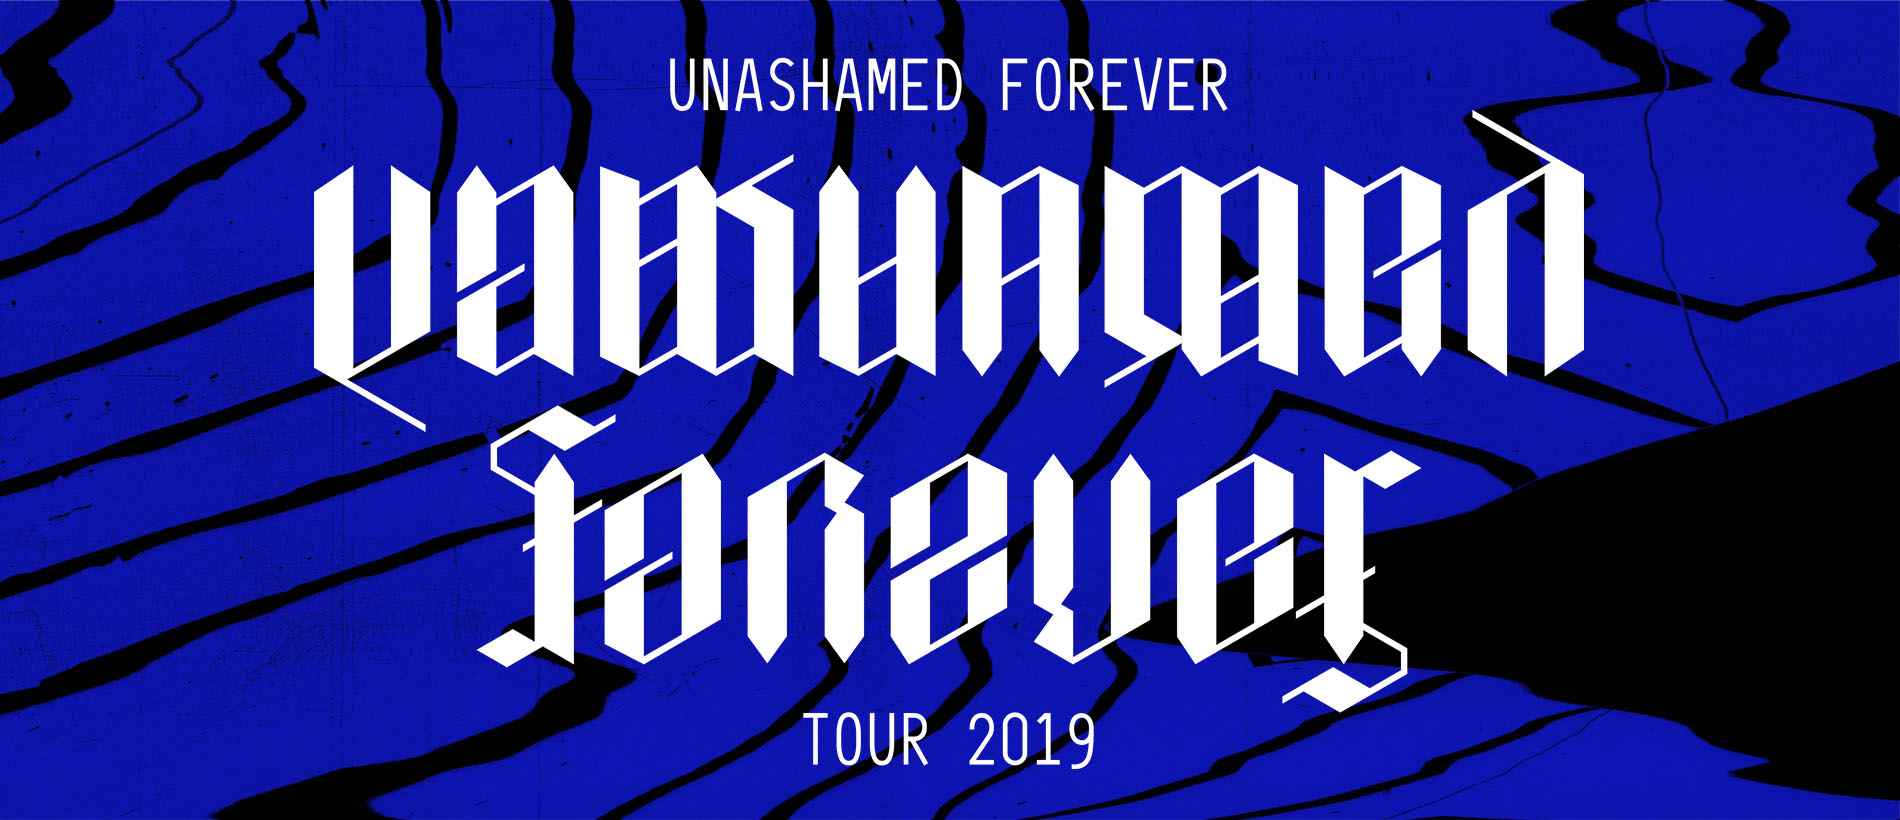 Unashamed Forever Tour